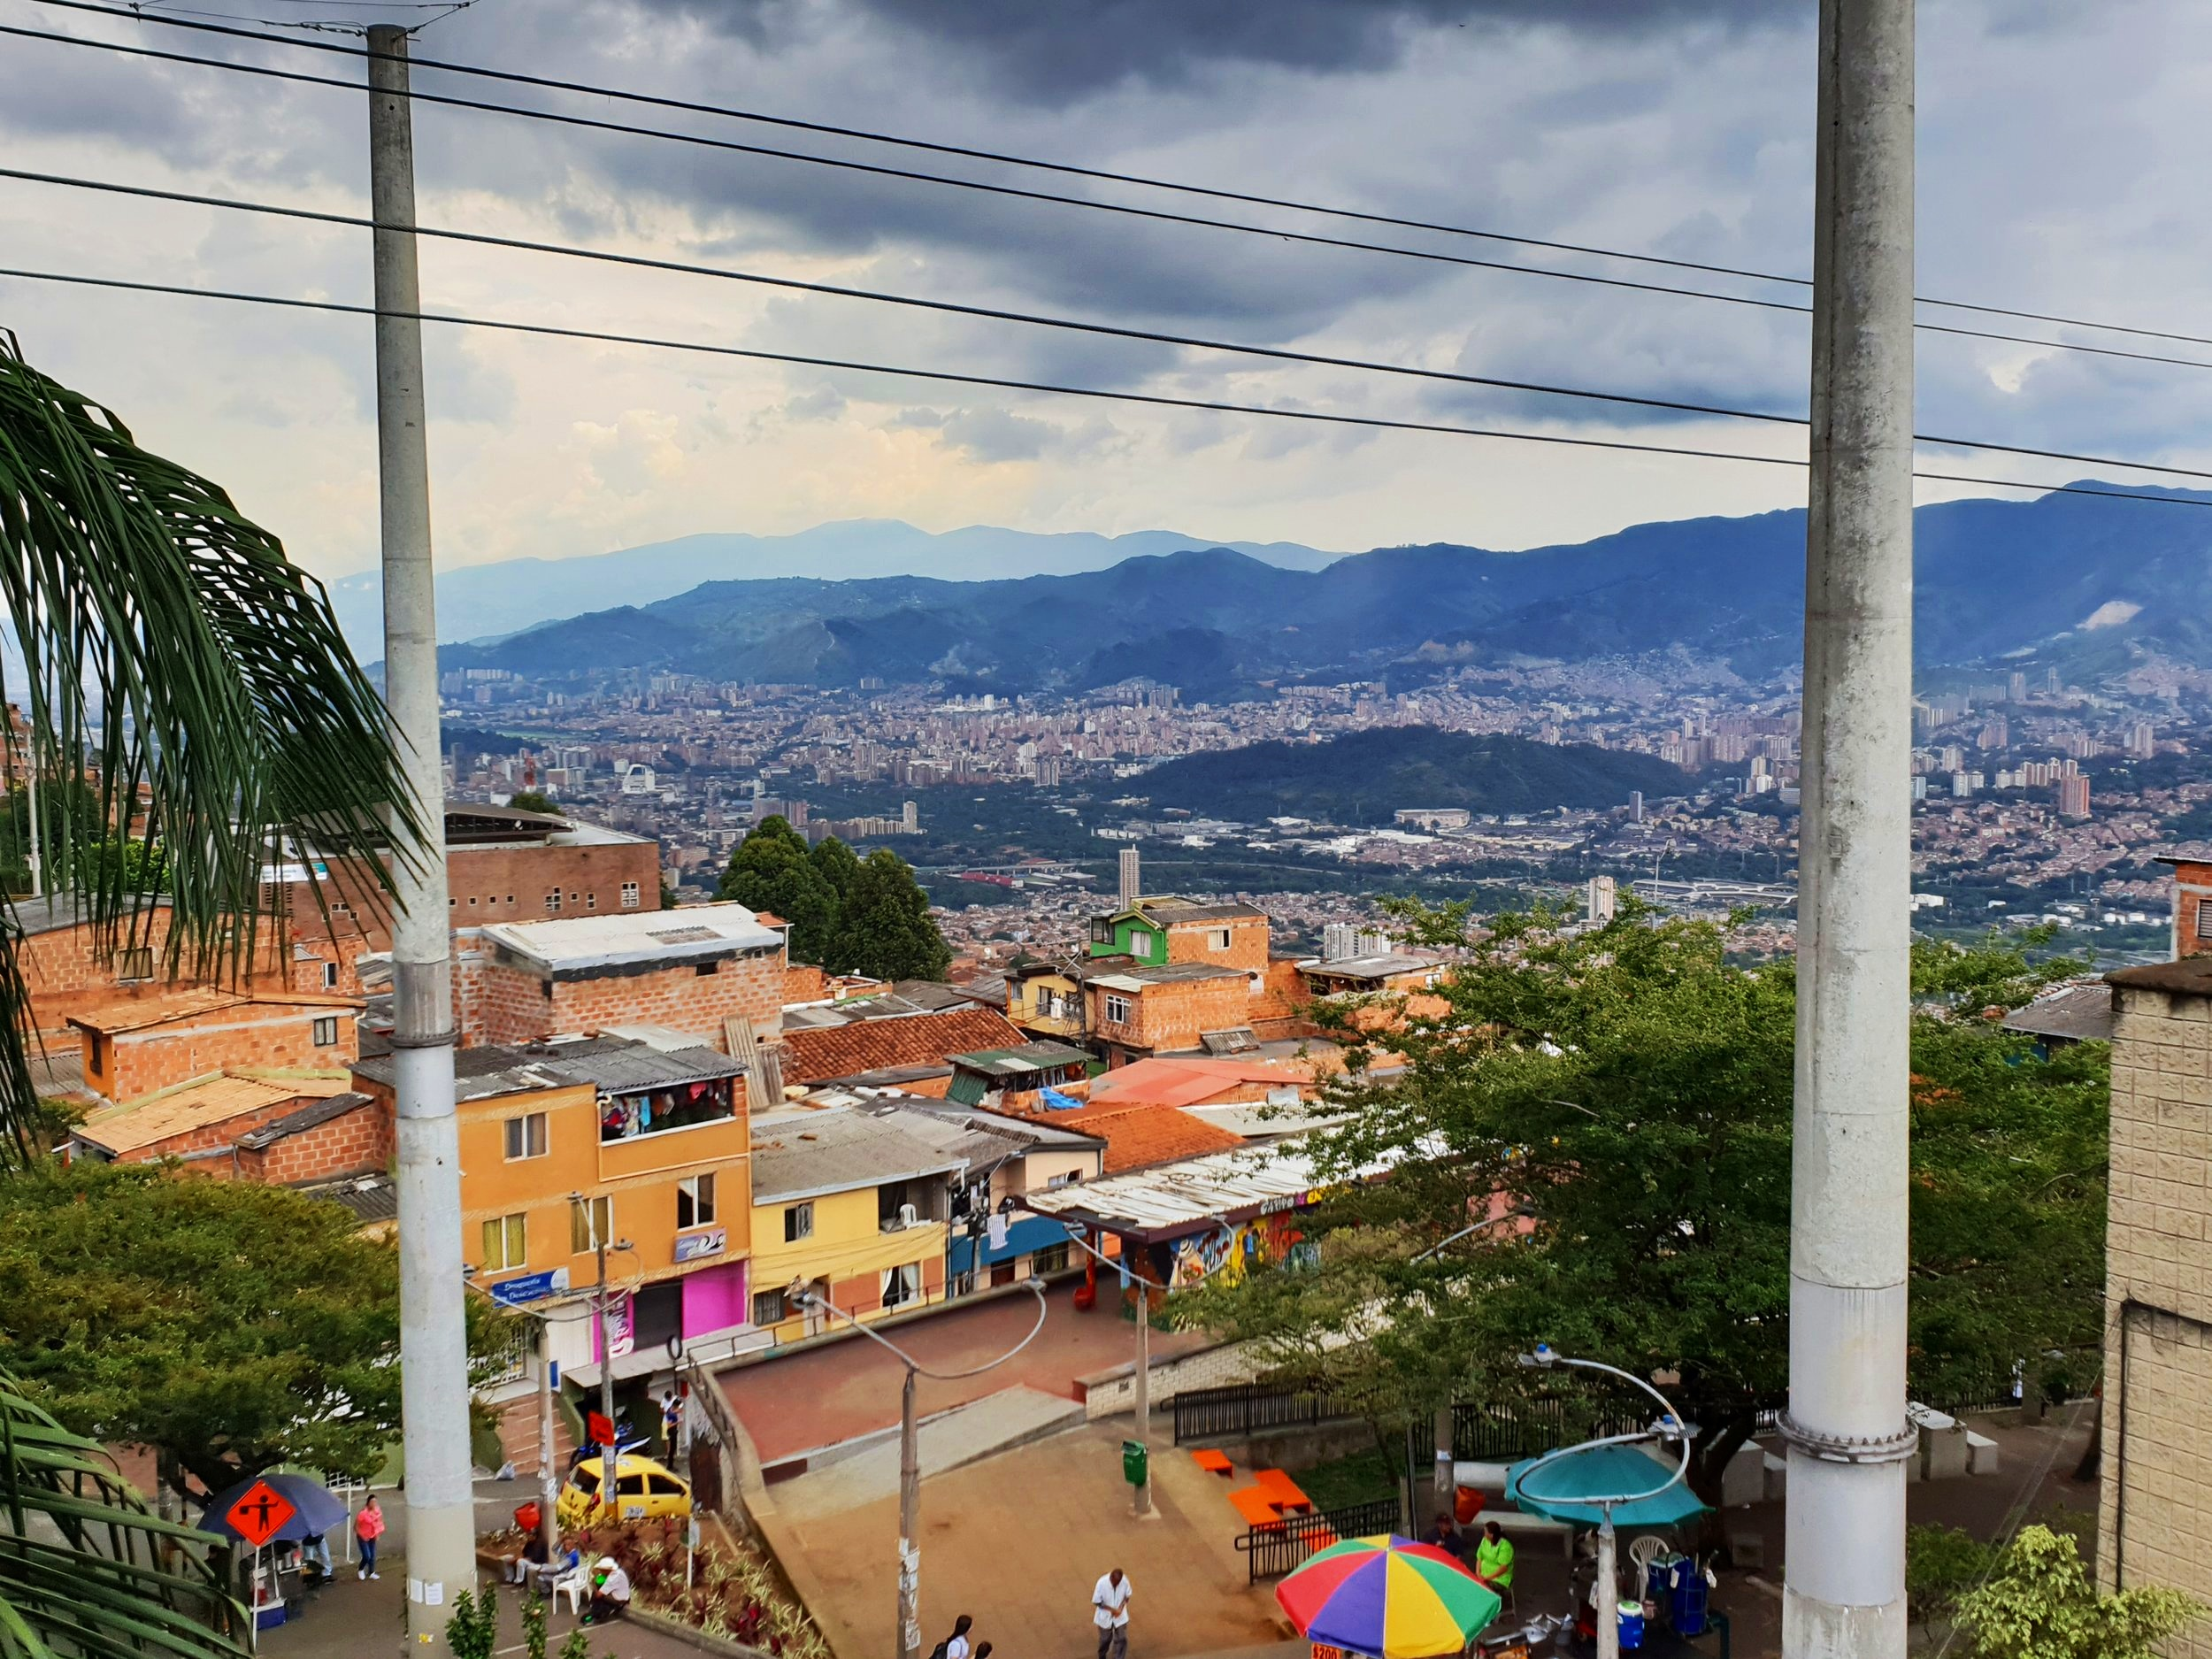 As intrepid travellers, we ventured into the barrios of Medellin….In a concealed cable car, before finding refuge in a rooftop bar, where this picture was taken.